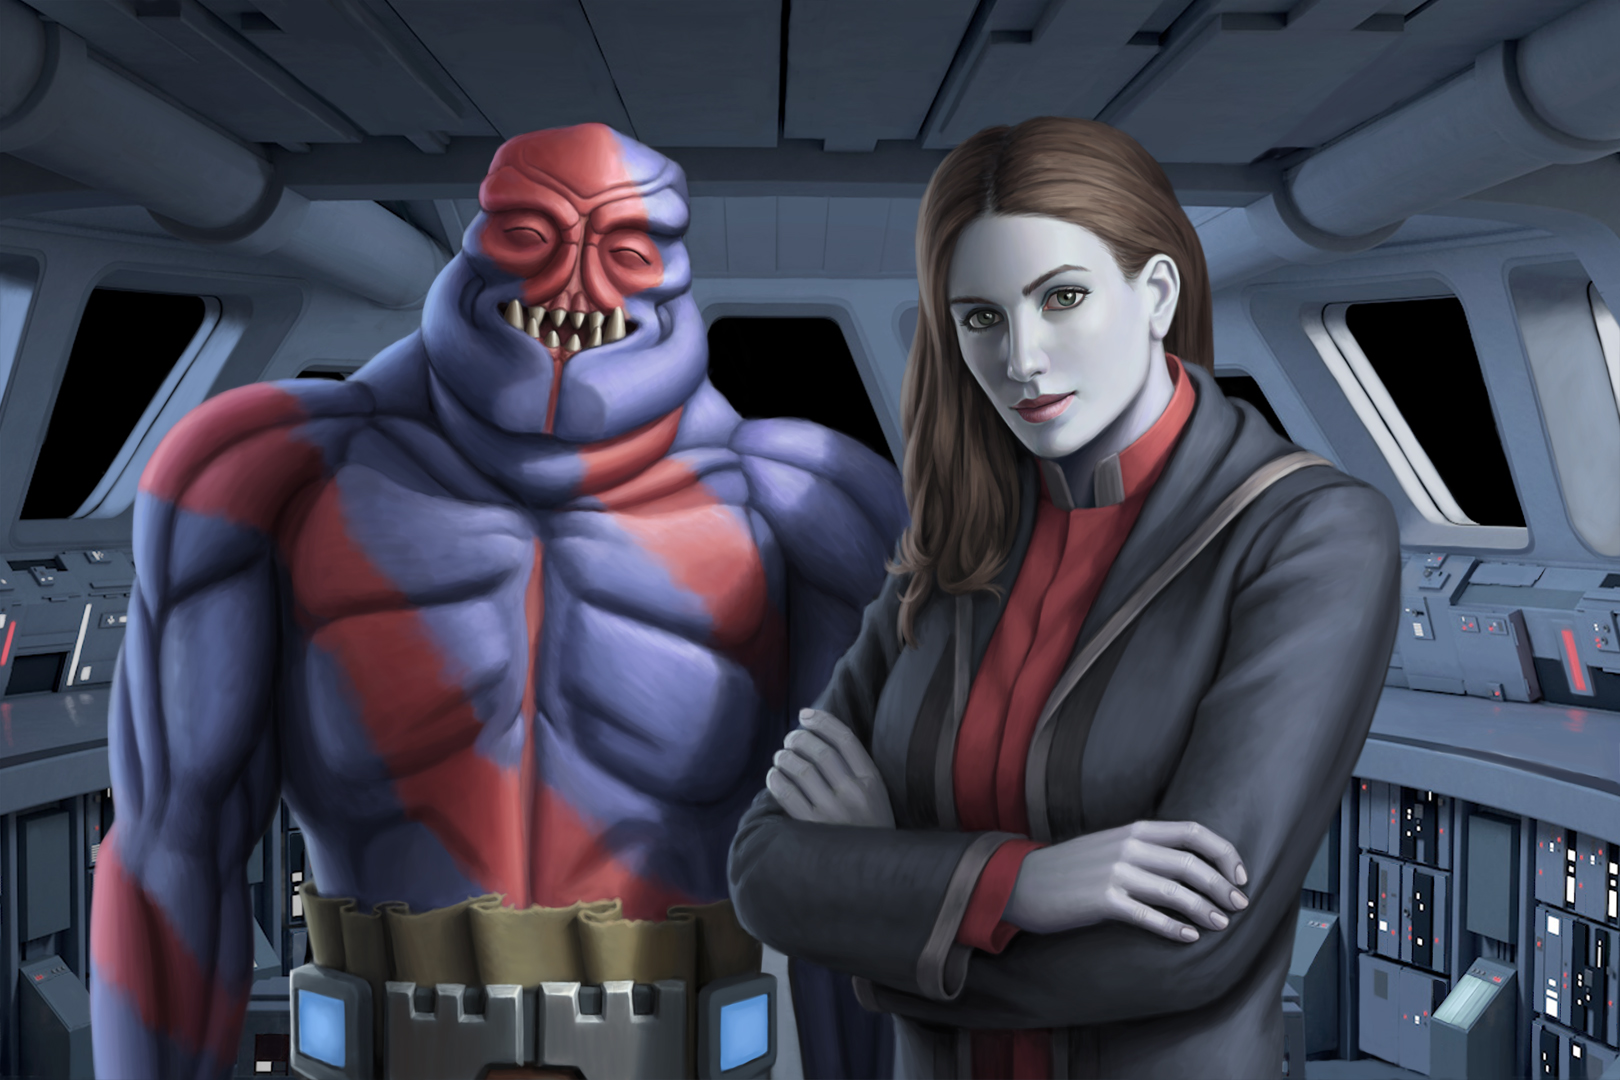 sith inquisitor and khem val by maximpakulov on deviantart